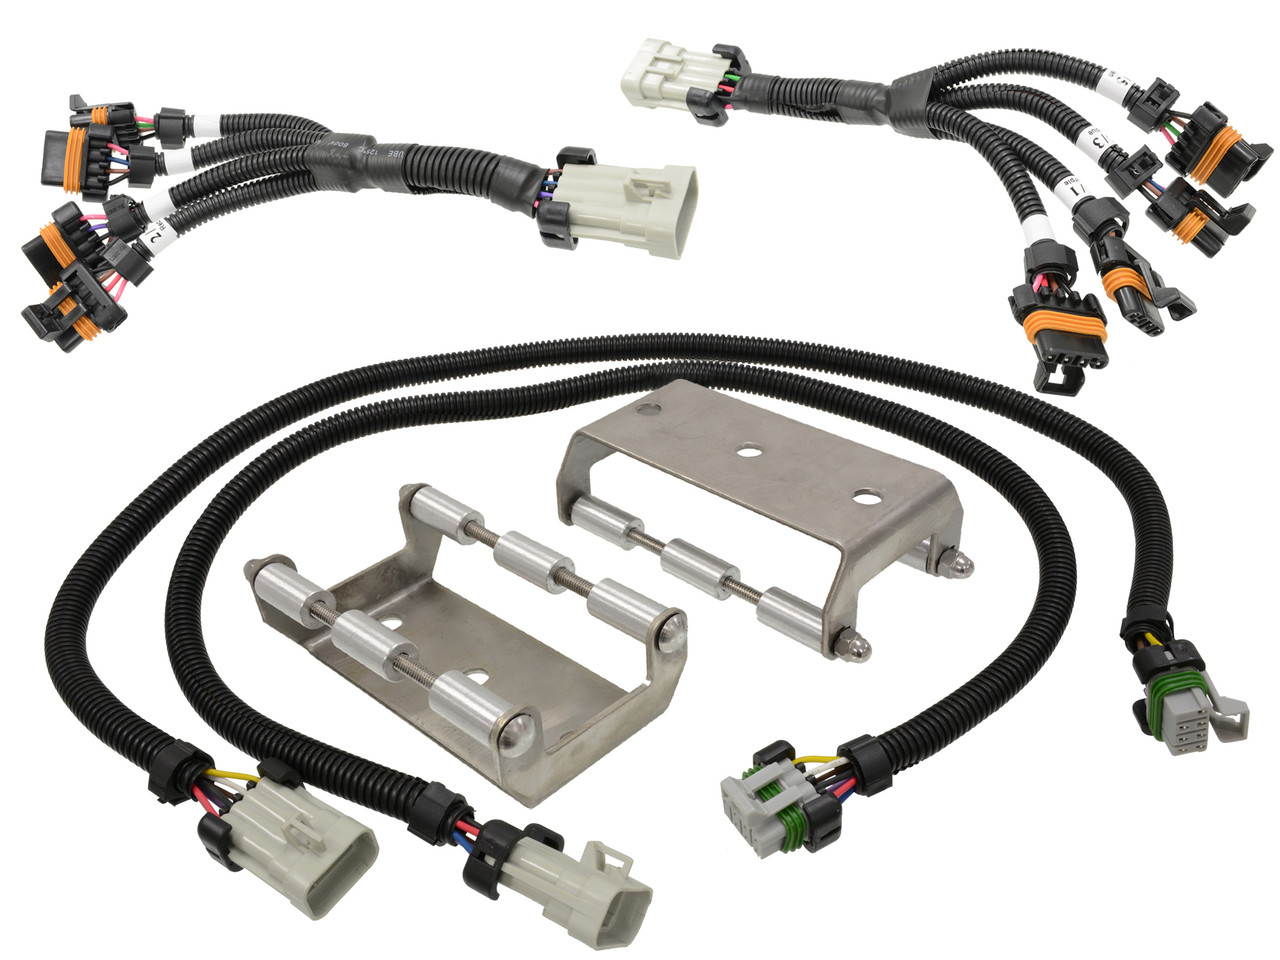 mf 135 wiring harness html with Michigan Harness Roller on  together with 3 Phase Delta Diagram furthermore 7m86g Chevrolet K1500 4x4 Replacing Turn Signal Switch further Electrical Diagram Massey Ferguson 231 moreover 8jn89 Wiring Diagram John Deere 111.